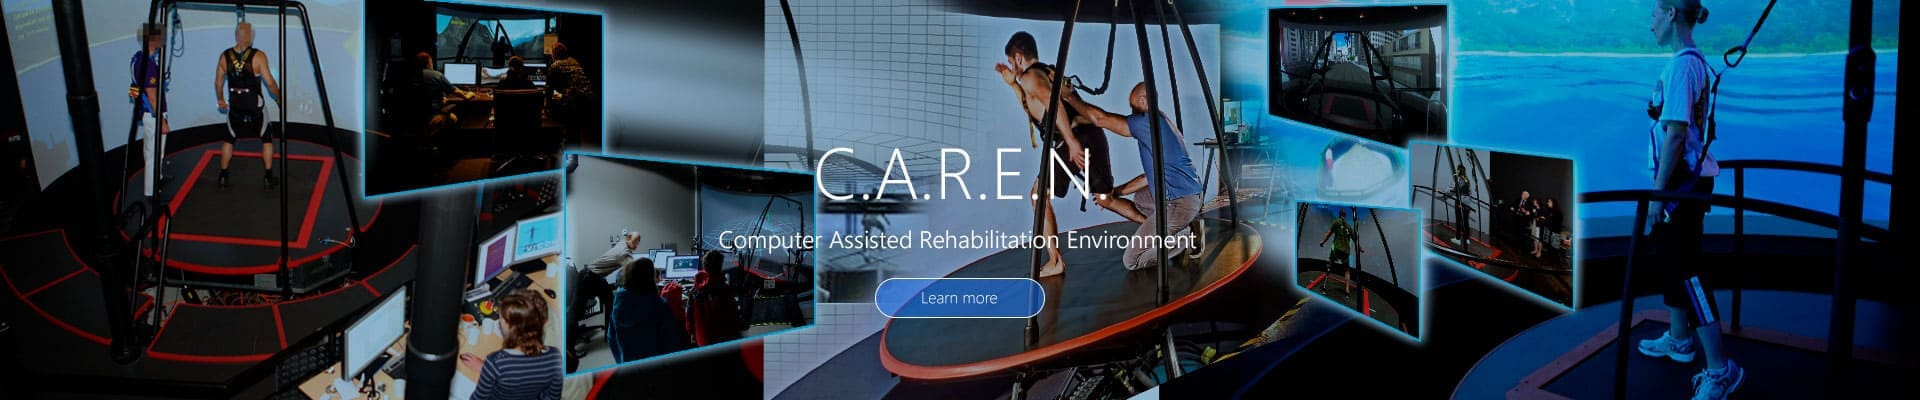 C.A.R.E.N: computer assisted rehabilitation environment (virtual reality rehabilitation)